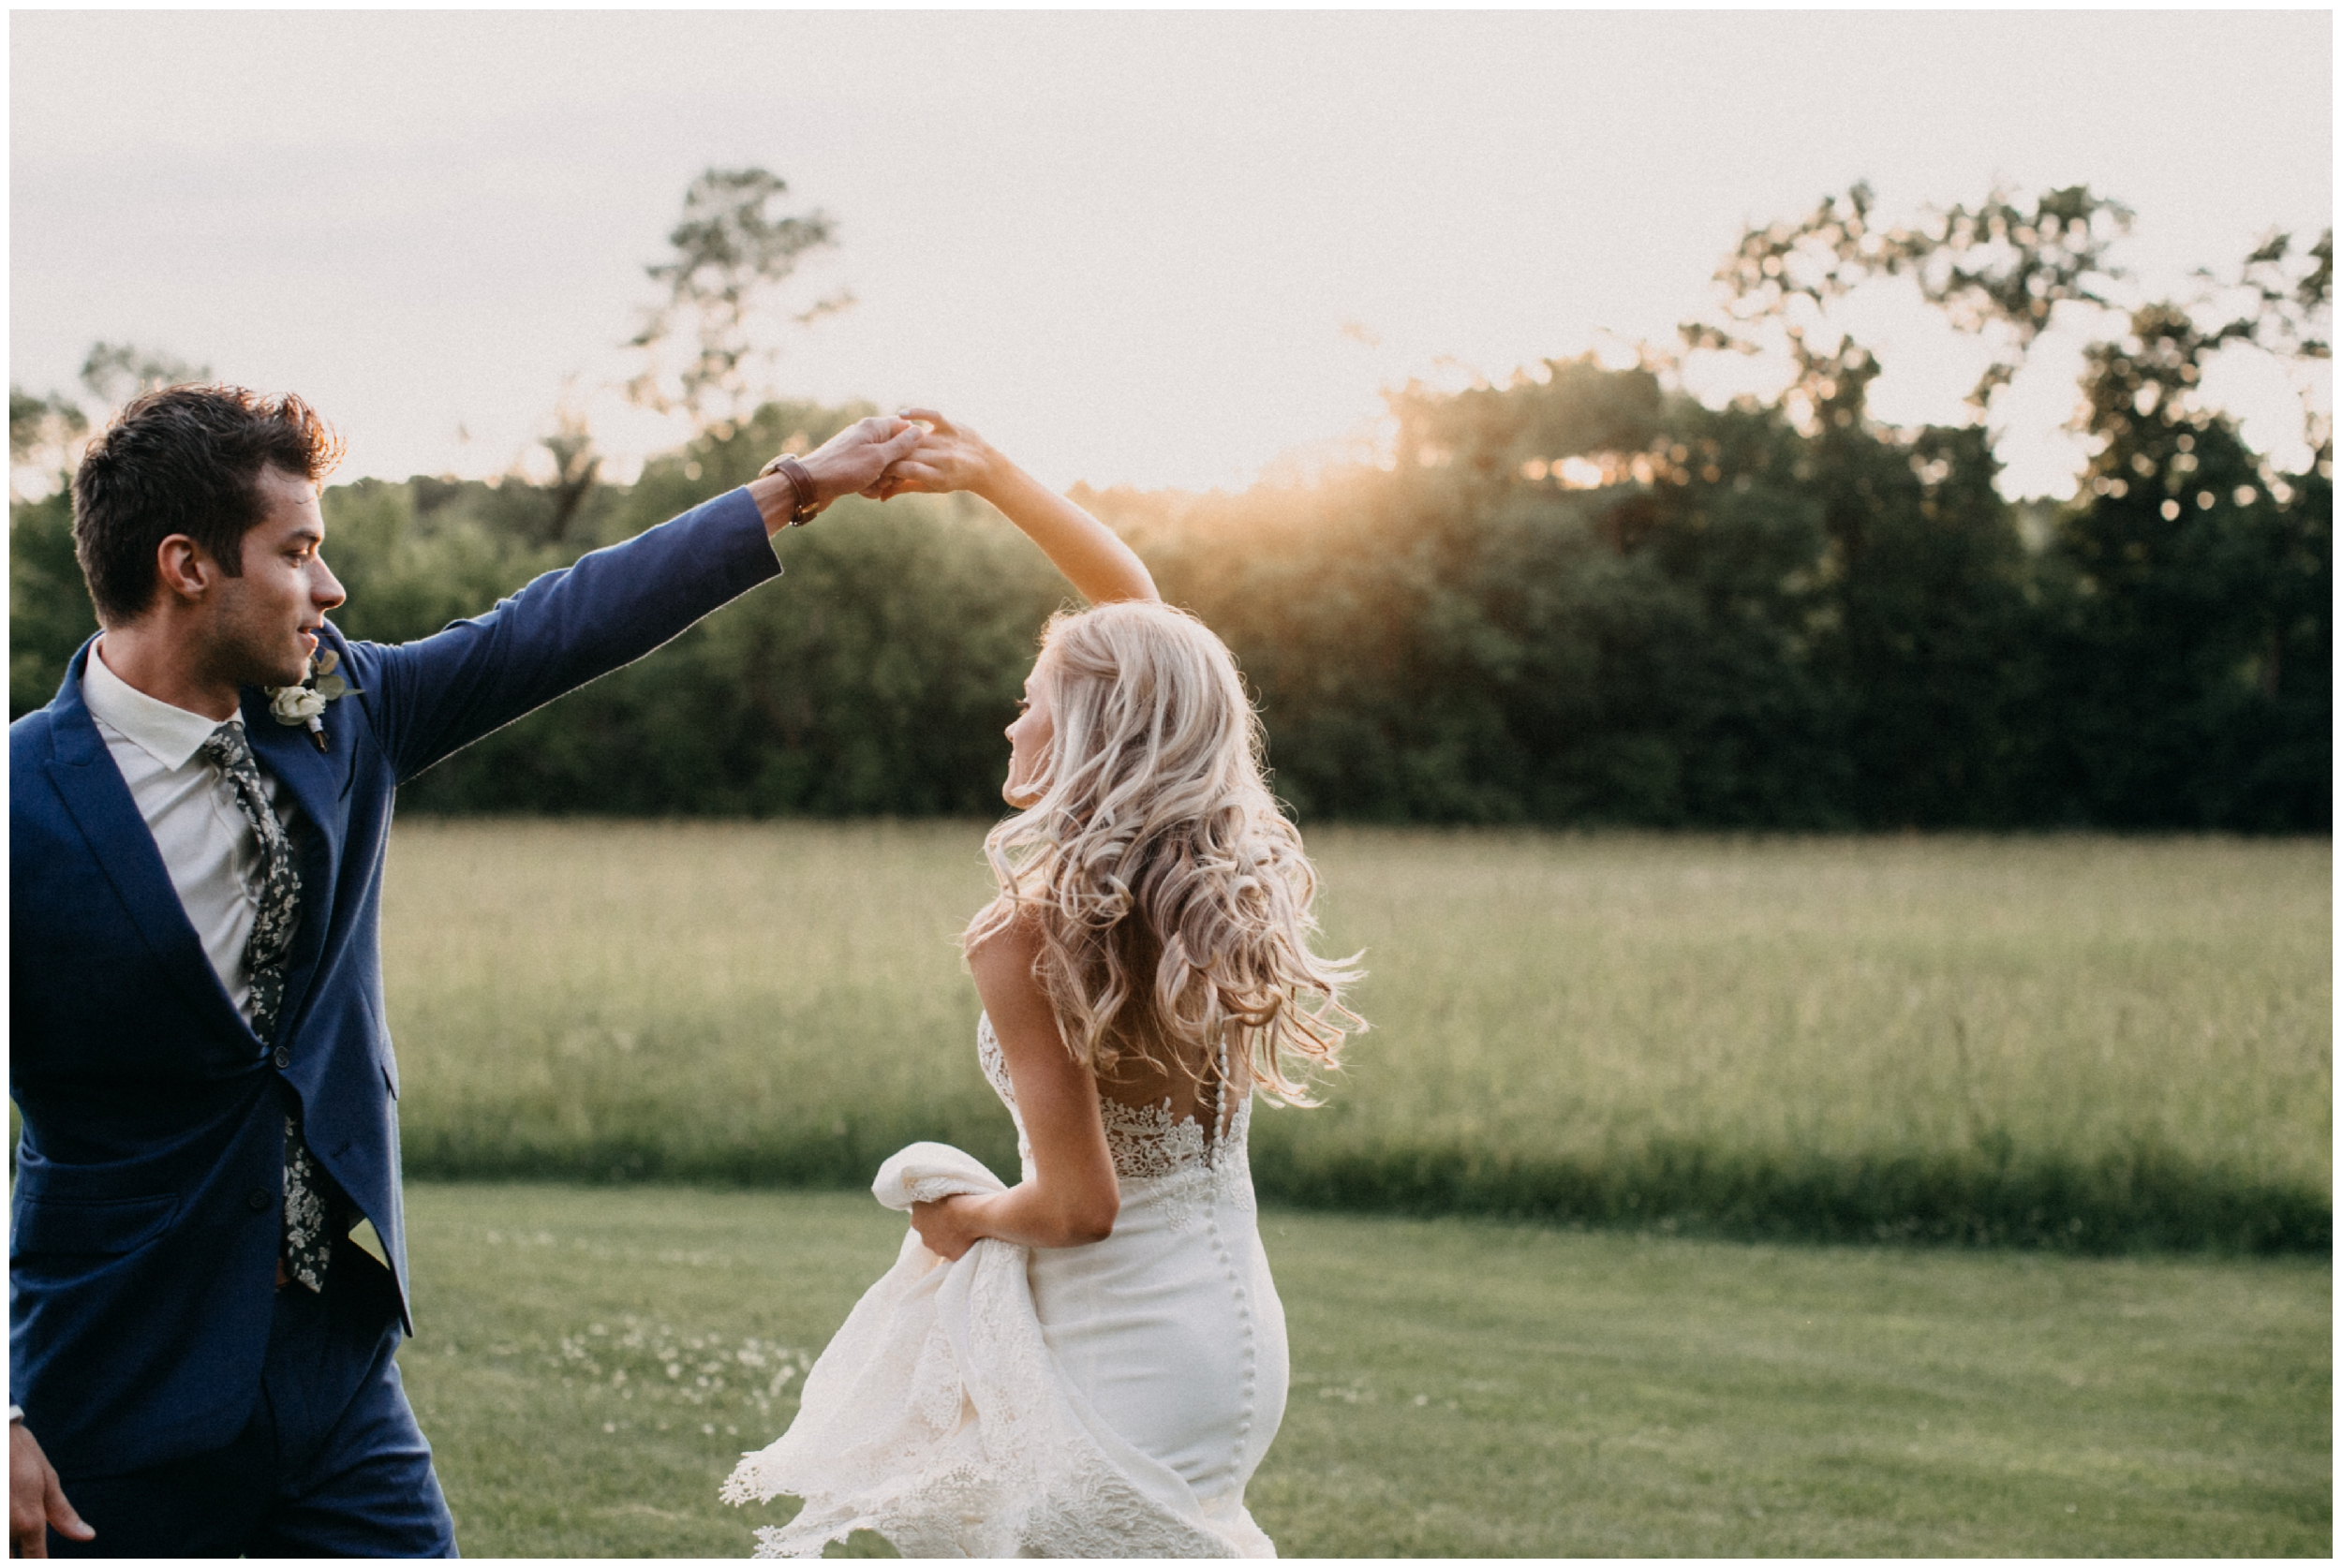 Bride and groom dancing at sunset during Creekside Farm wedding